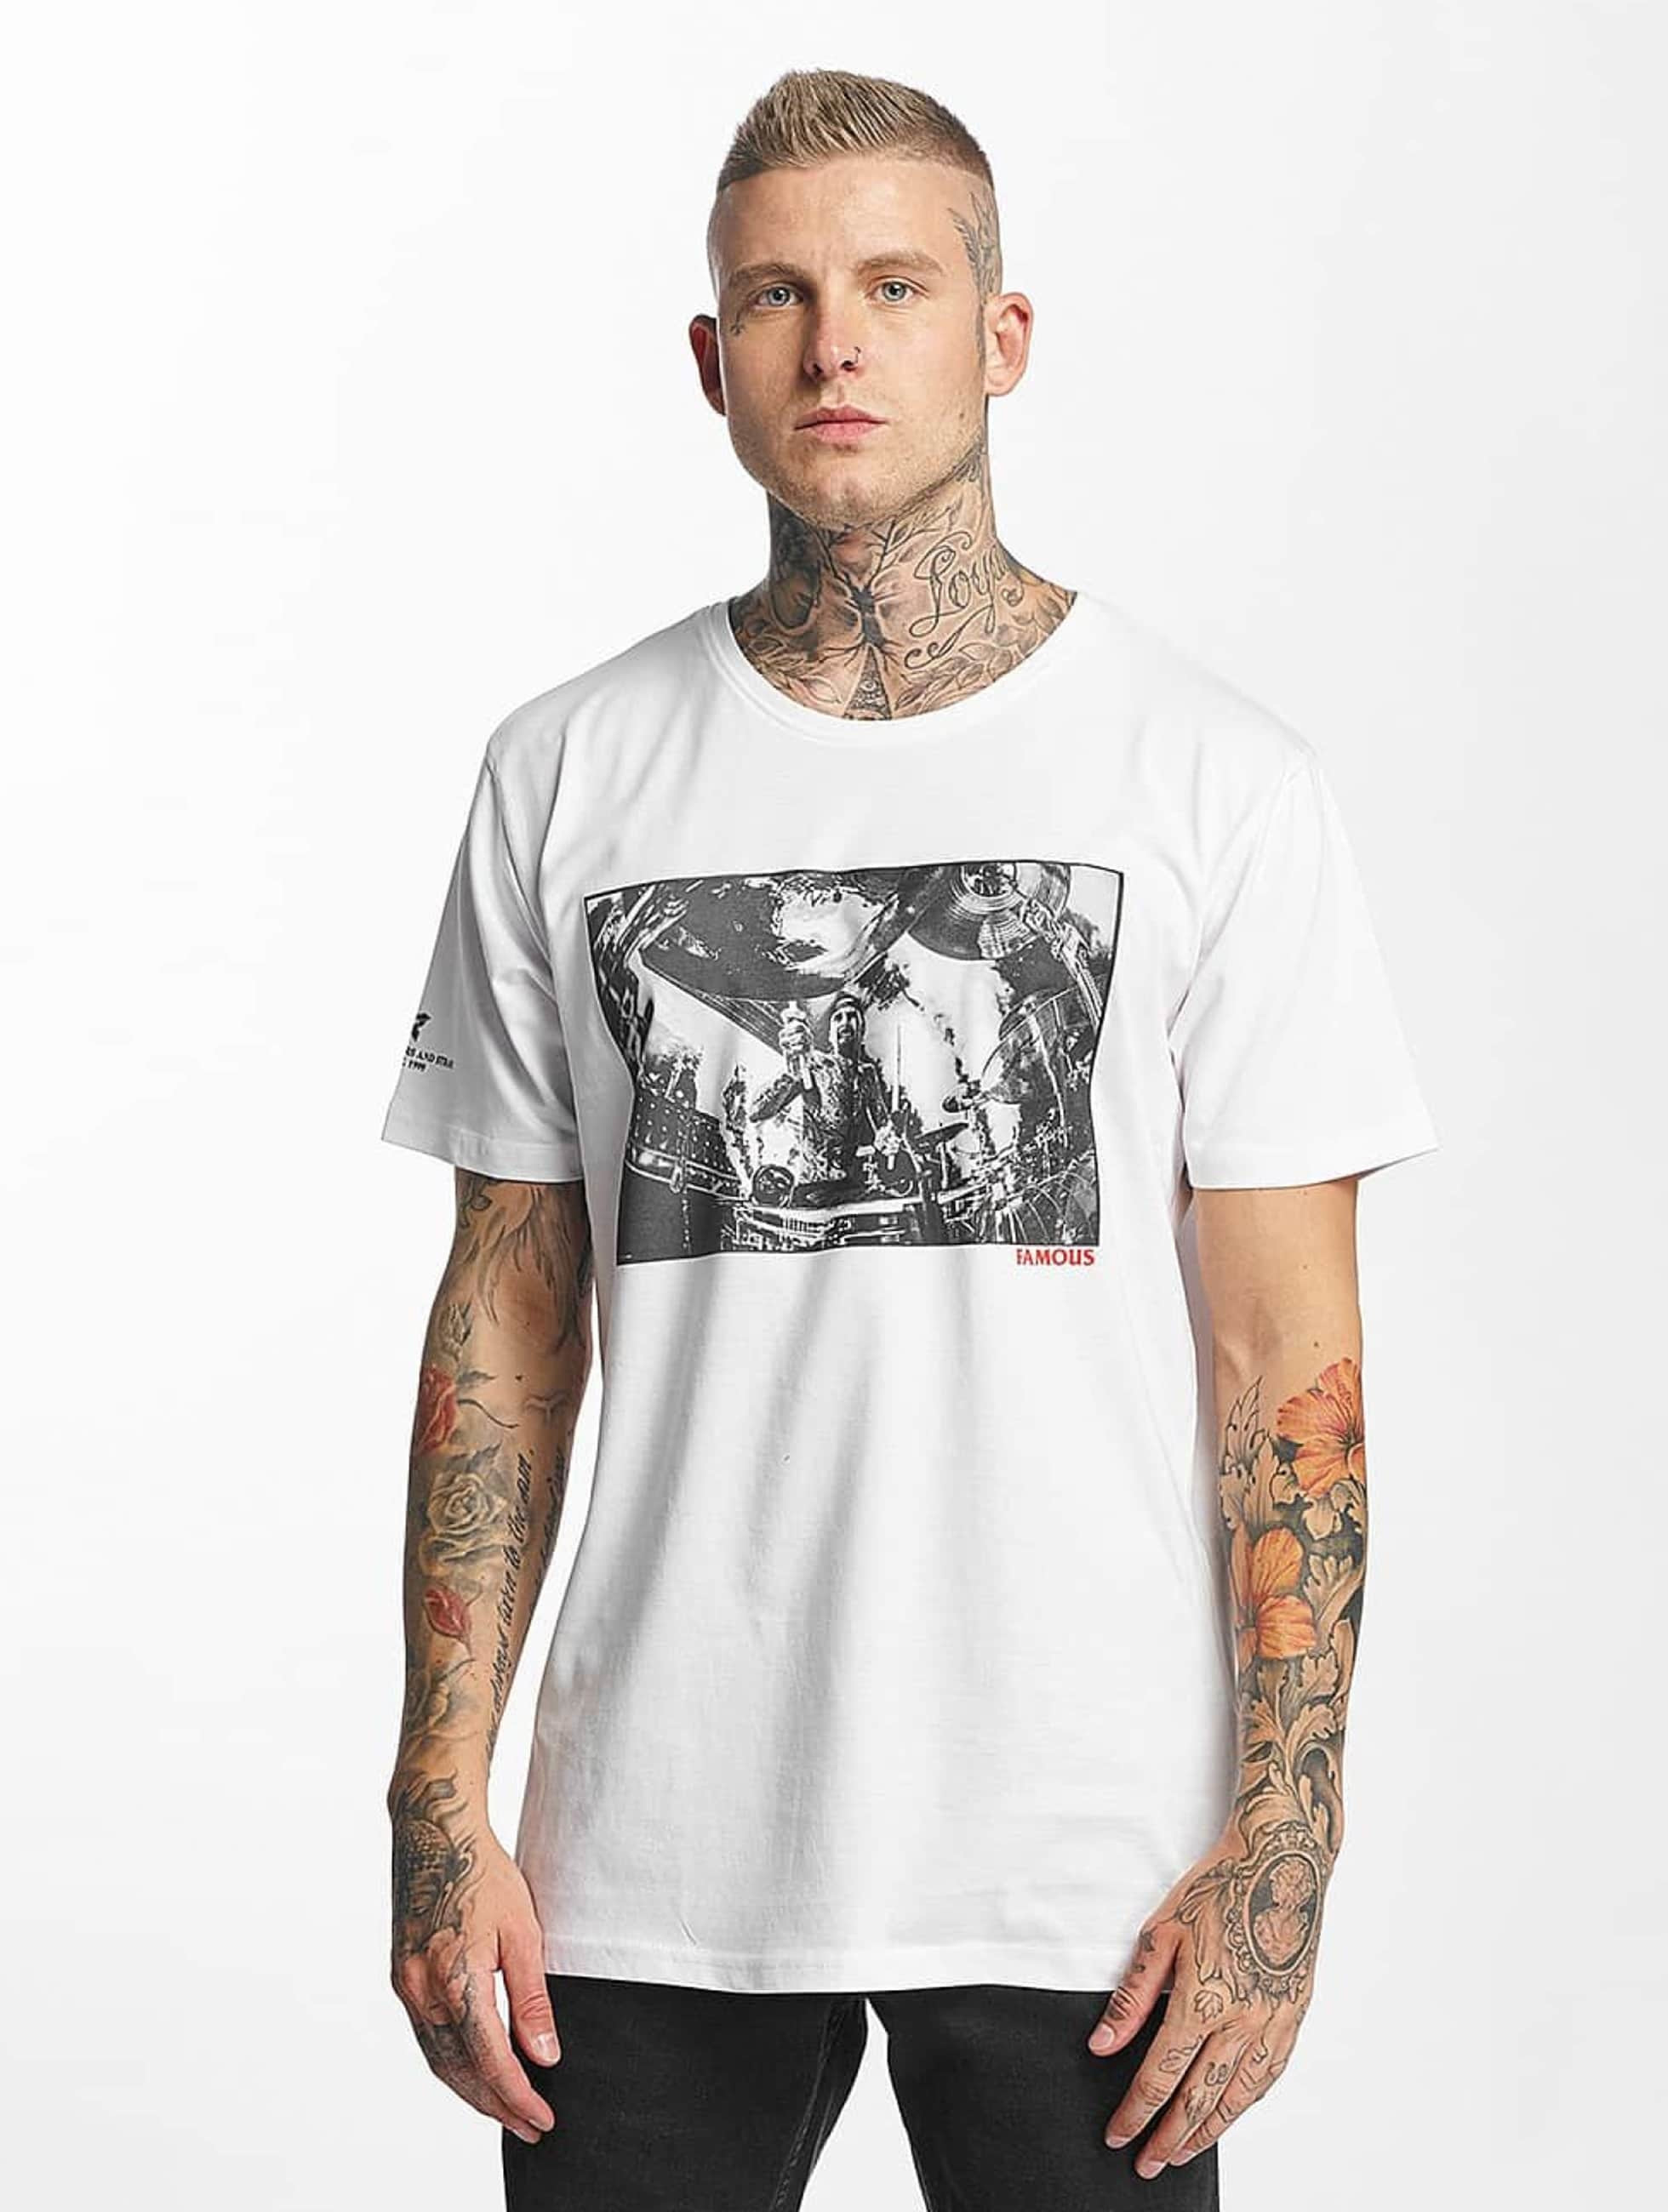 Famous Stars and Straps T-Shirt Drums Drums Drums weiß